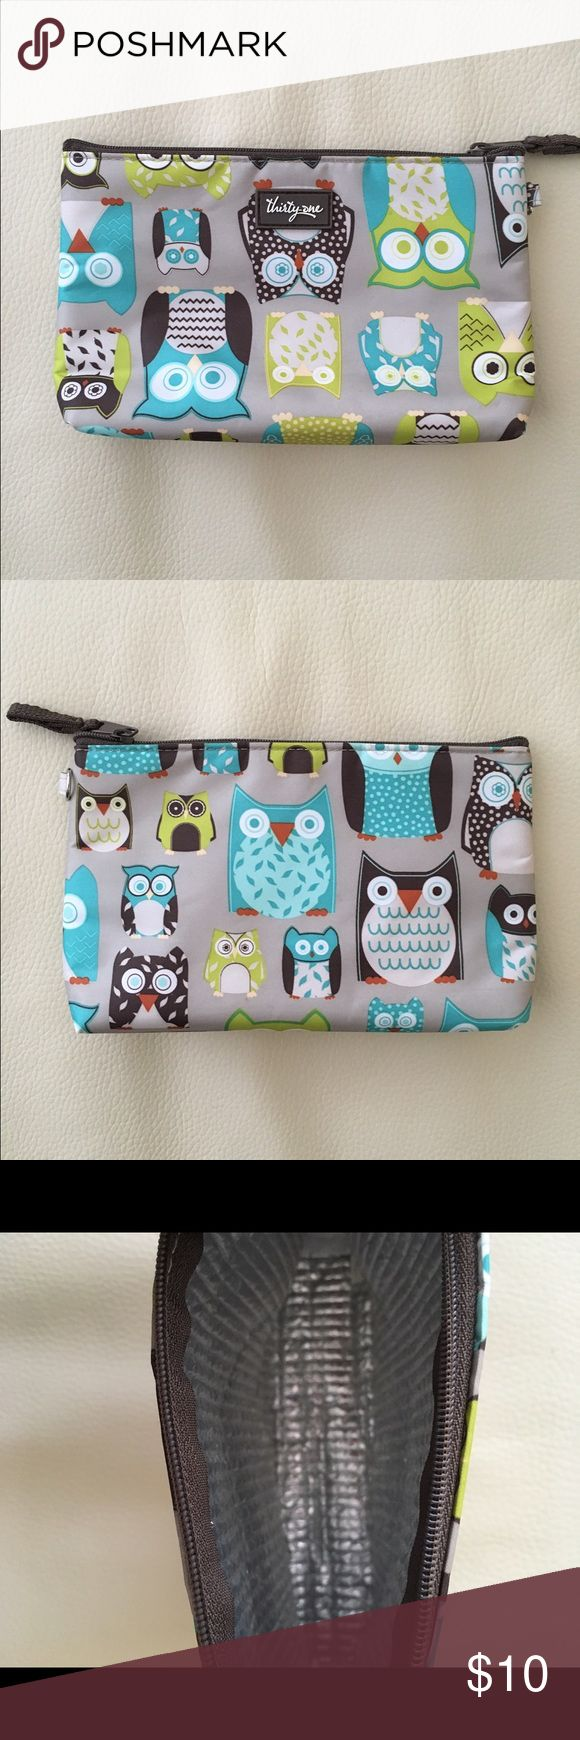 Thirty One Owl Thermal Pouch Great for smaller cold or hot items! Good used condition. Very cute print! 8x5 measurements. Thirty One Other